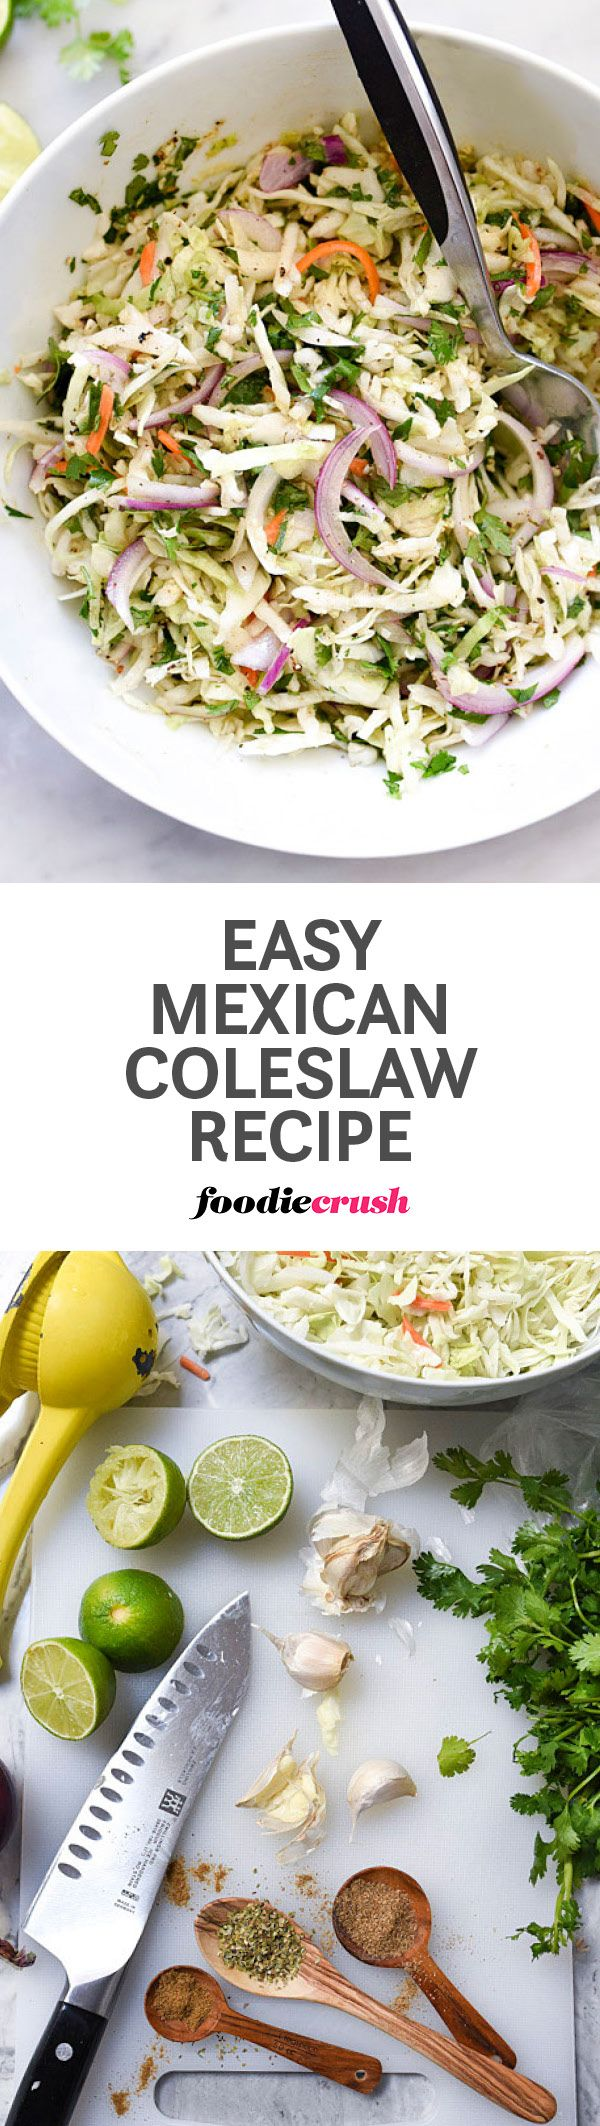 This super simple, fresh tasting Mexican flavored coleslaw is perfect for picnics, BBQs and potlucks as it doesn't contain any mayo and takes just a few minutes to toss together | foodiecrush.com #coleslaw #mexican